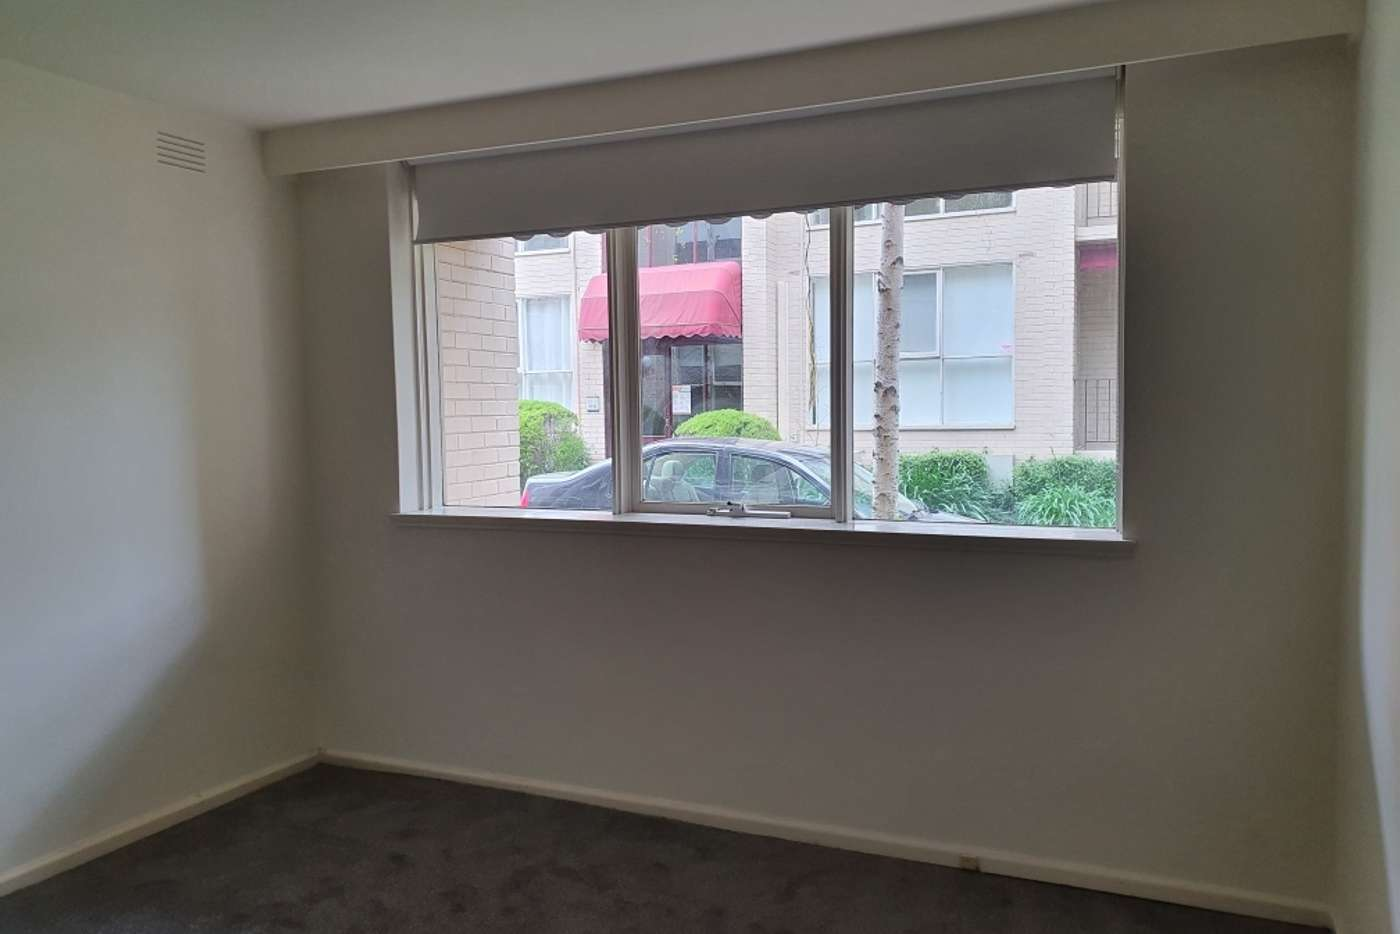 Sixth view of Homely apartment listing, 11/579 Dandenong Road, Armadale VIC 3143